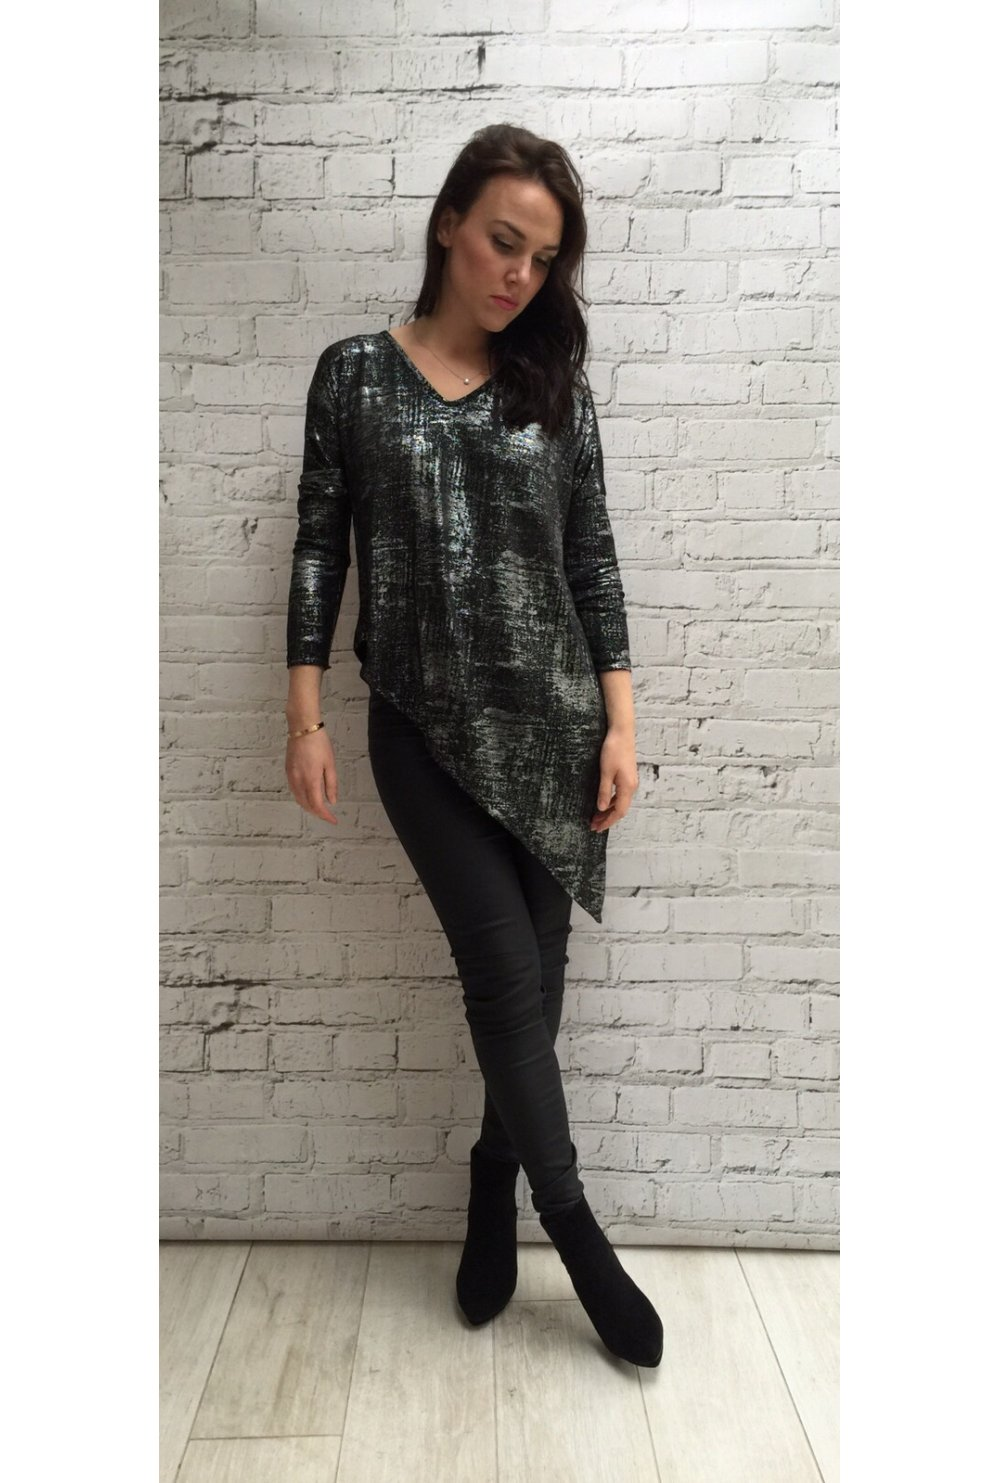 Find great deals on eBay for silver metallic women's tops. Shop with confidence.